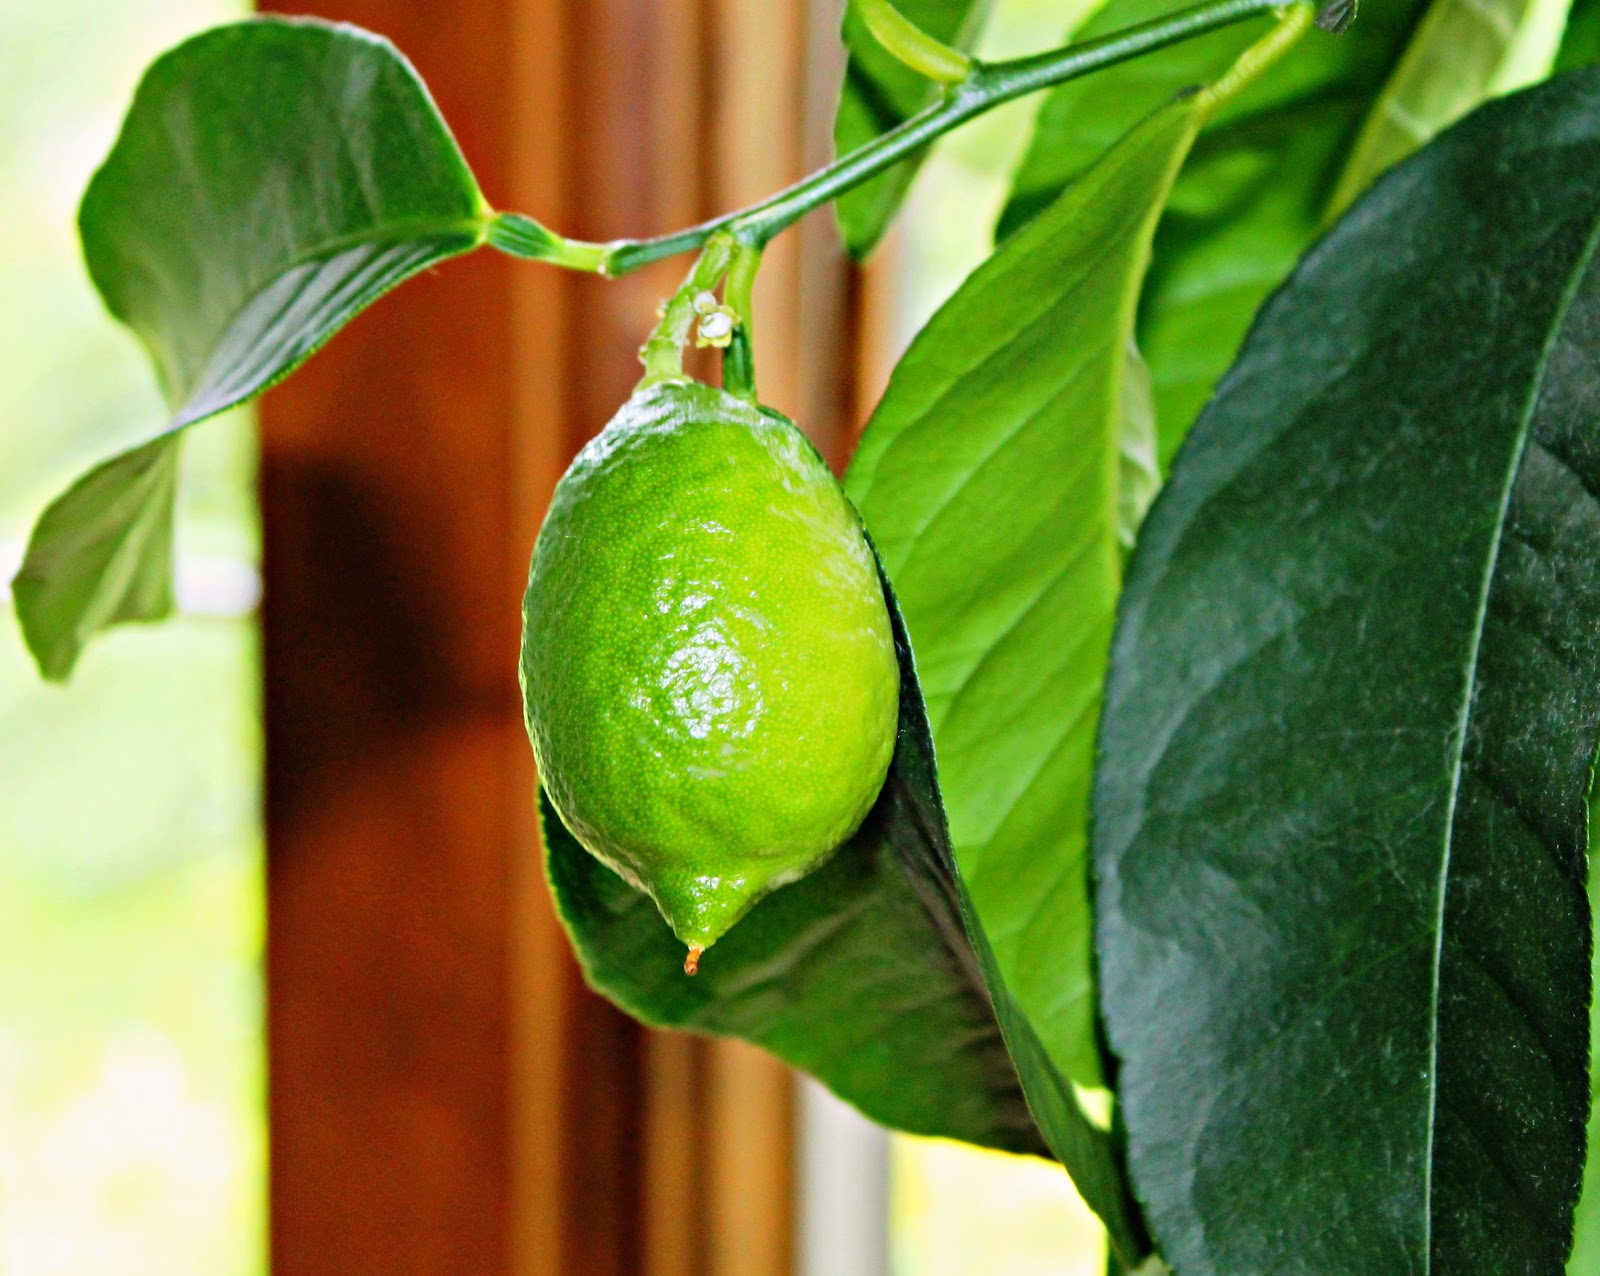 Indoor Fruit Plants This baby lime has been facing the sun